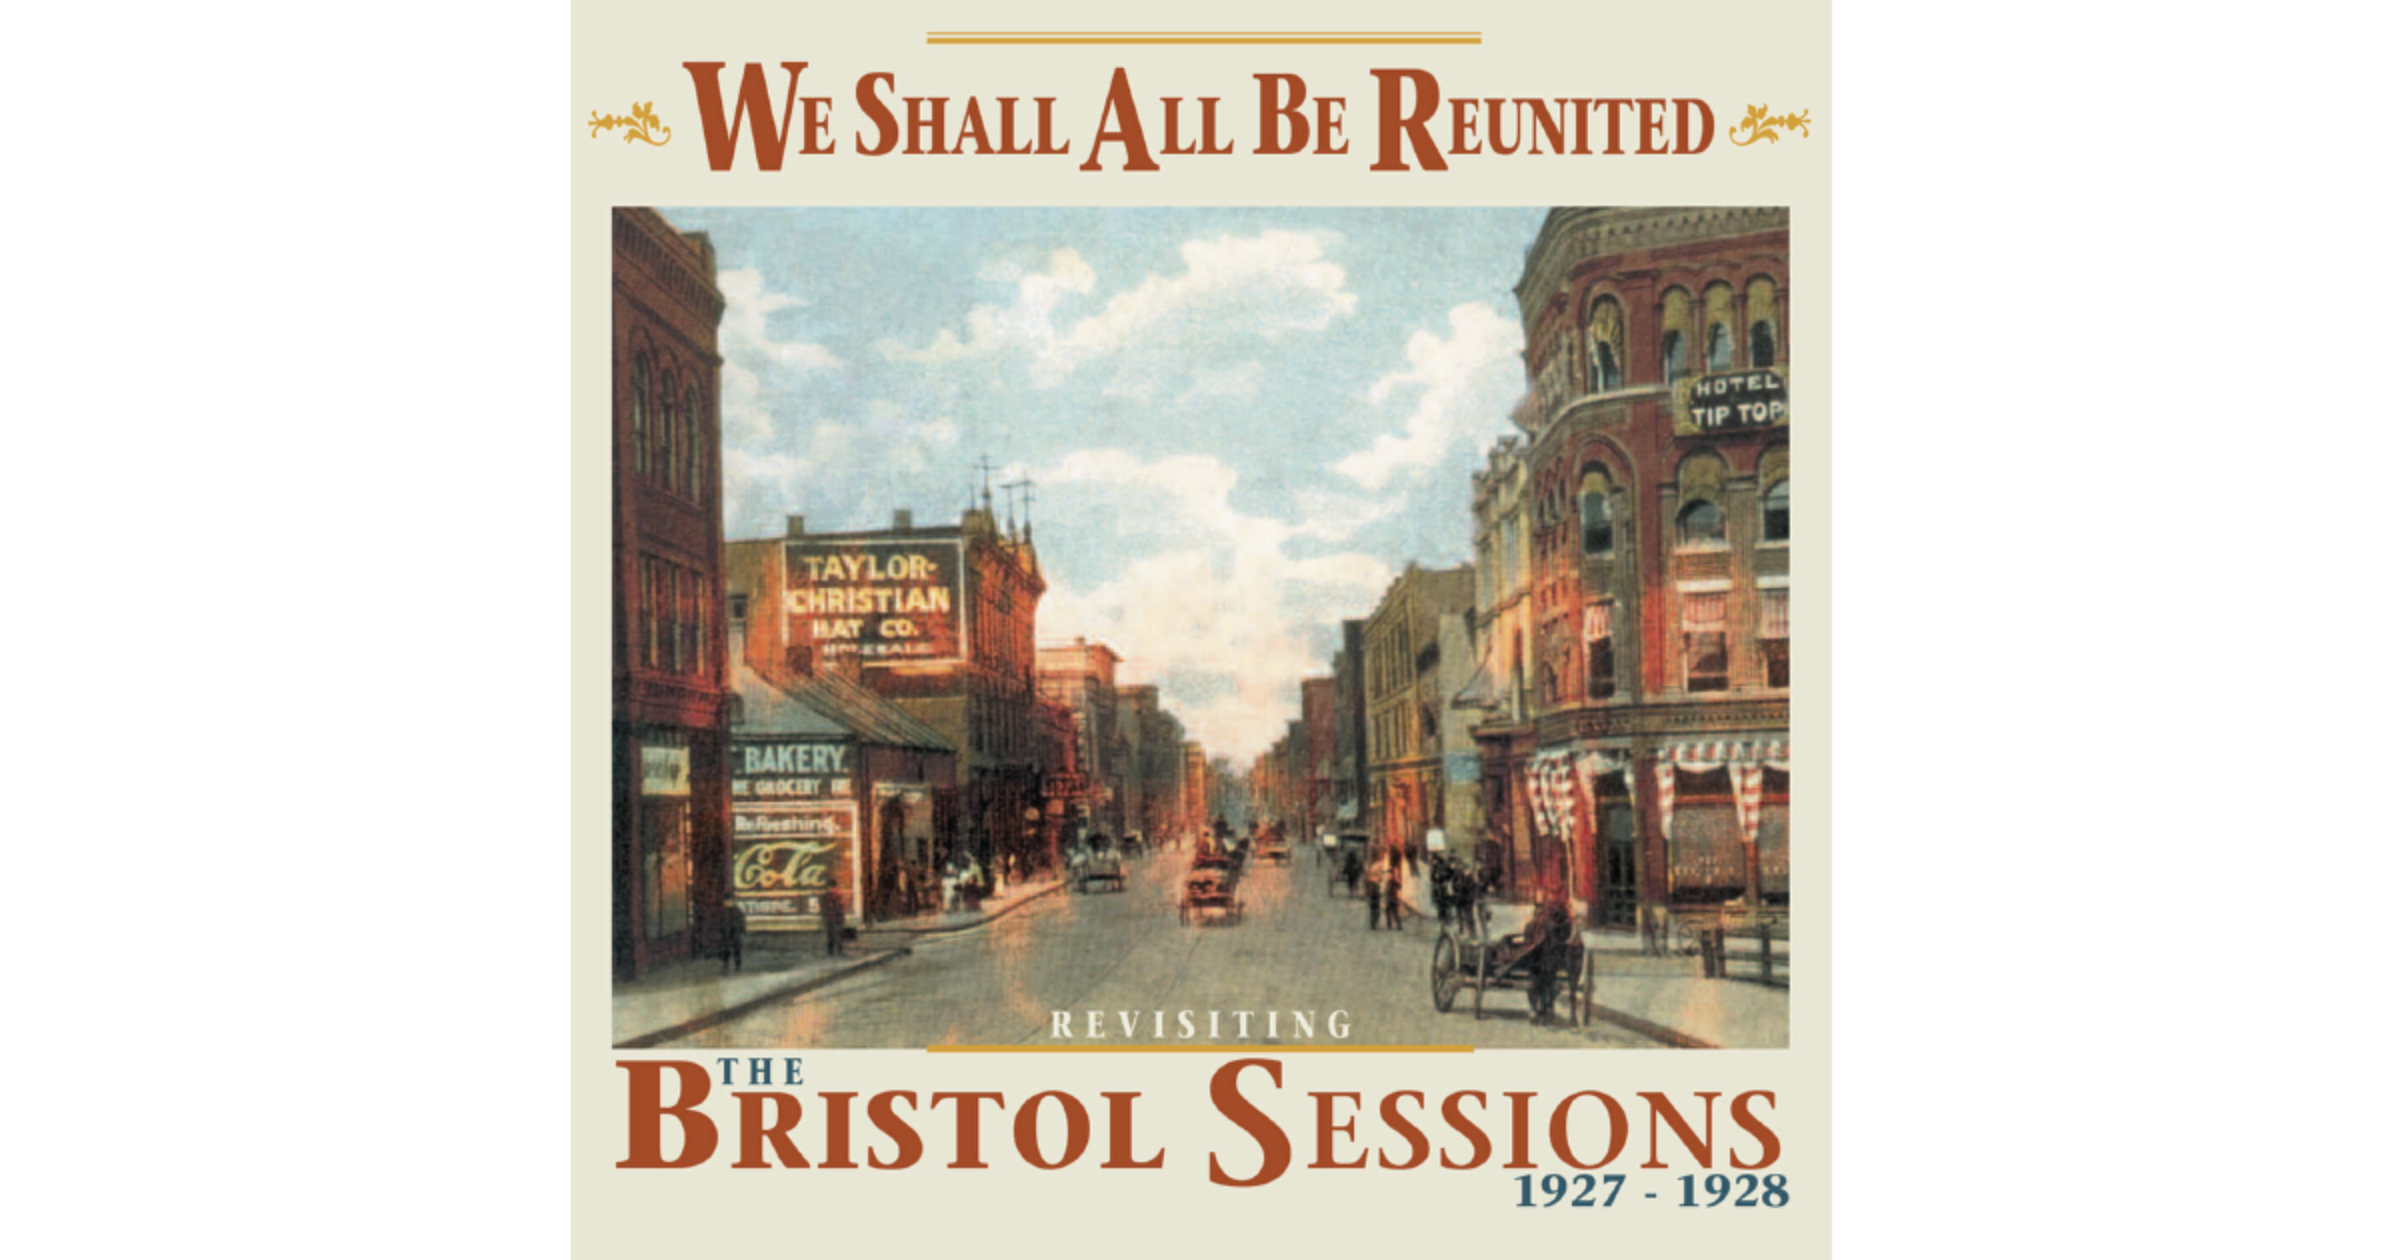 The Bristol Sessions Get Another Look on 'We Shall All Be Reunited' CD